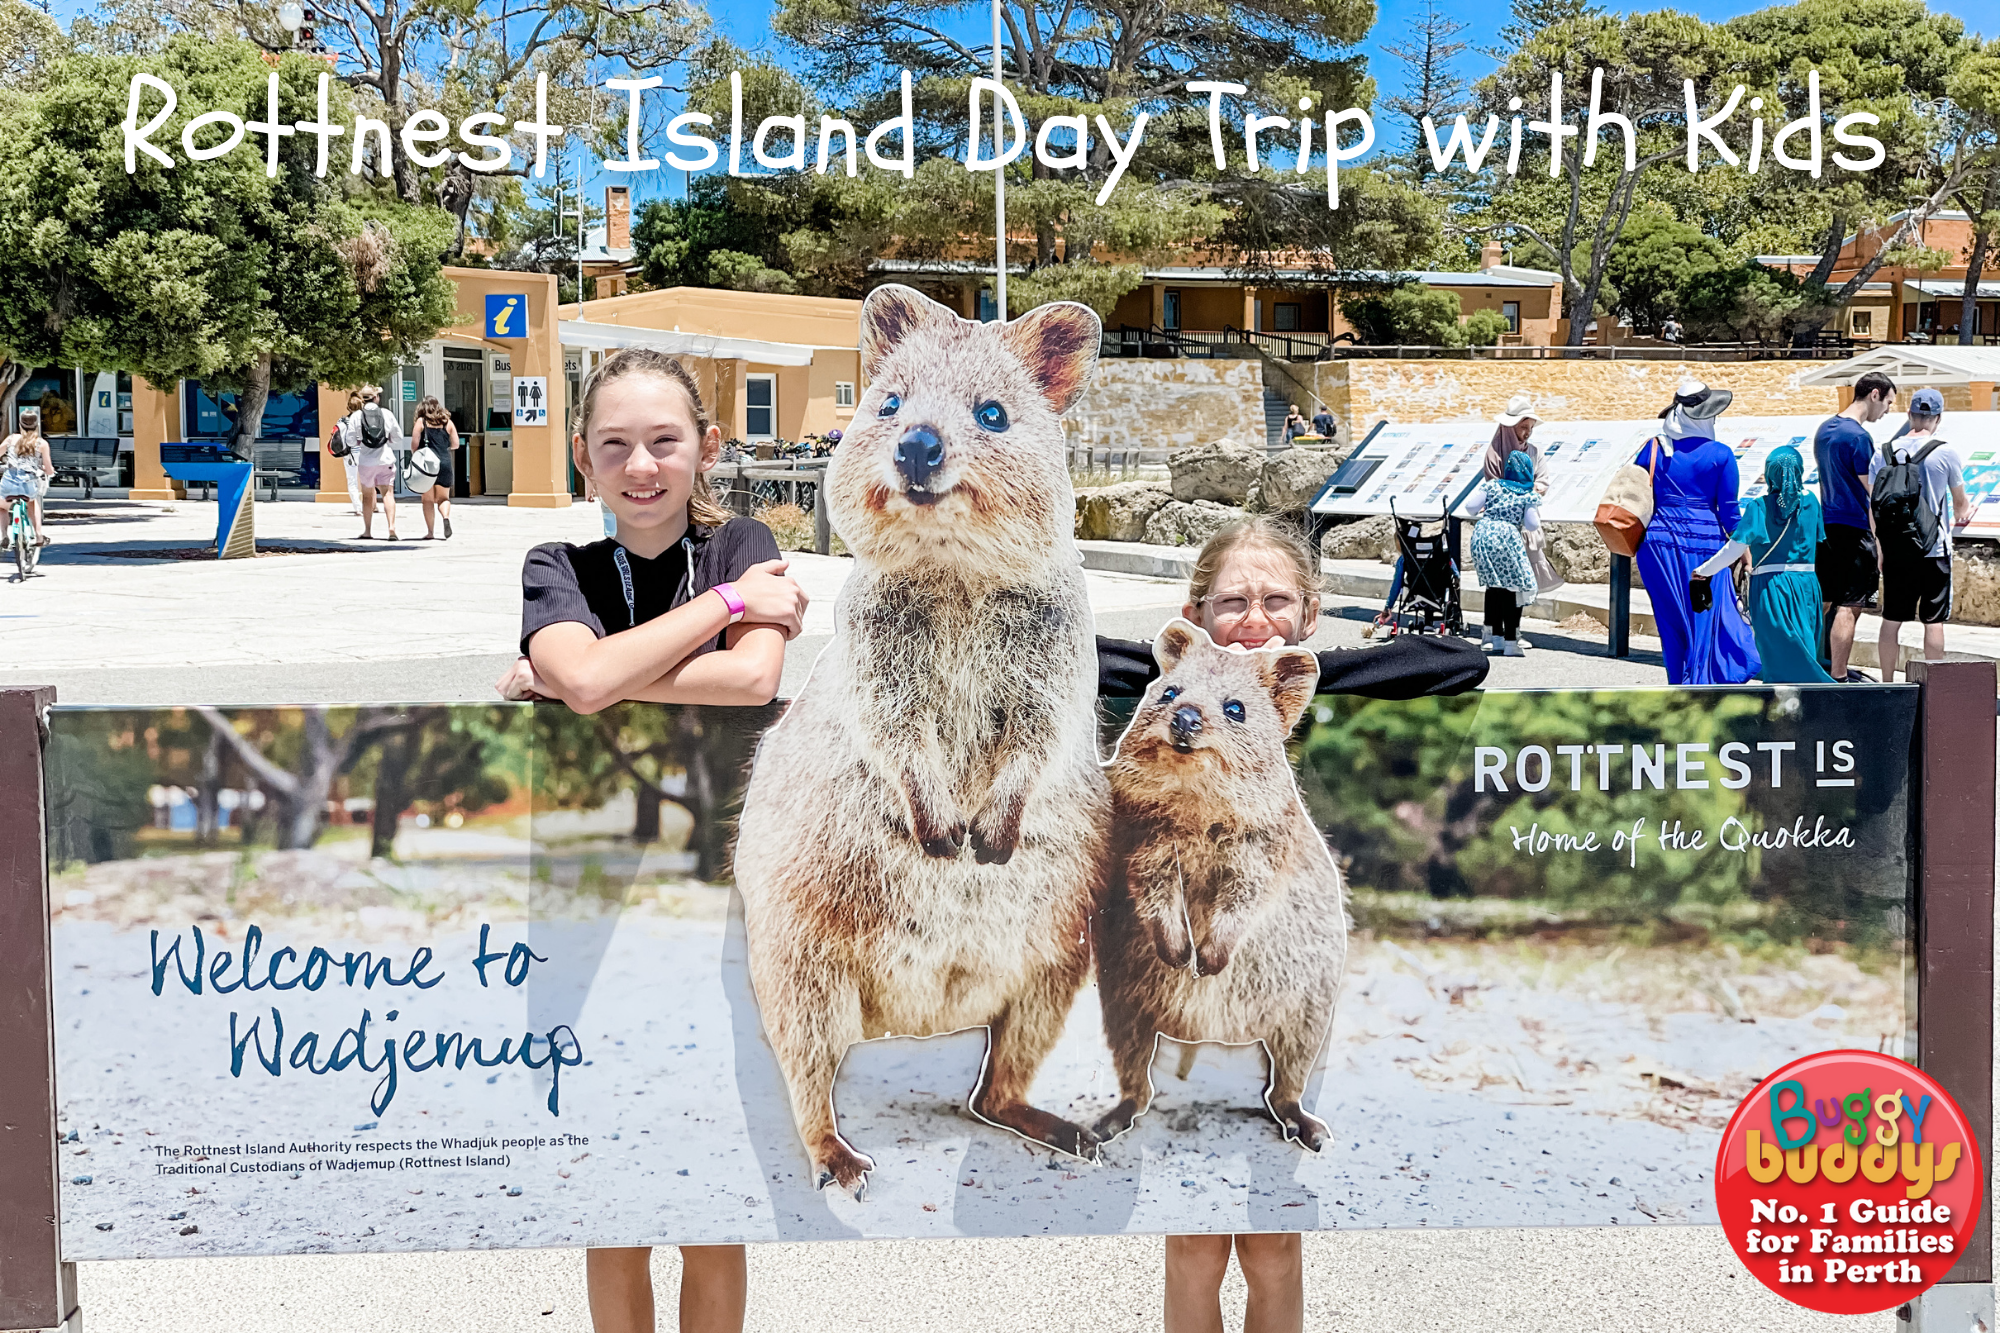 ROTTNEST ISLAND DAY TRIP WITH KIDS